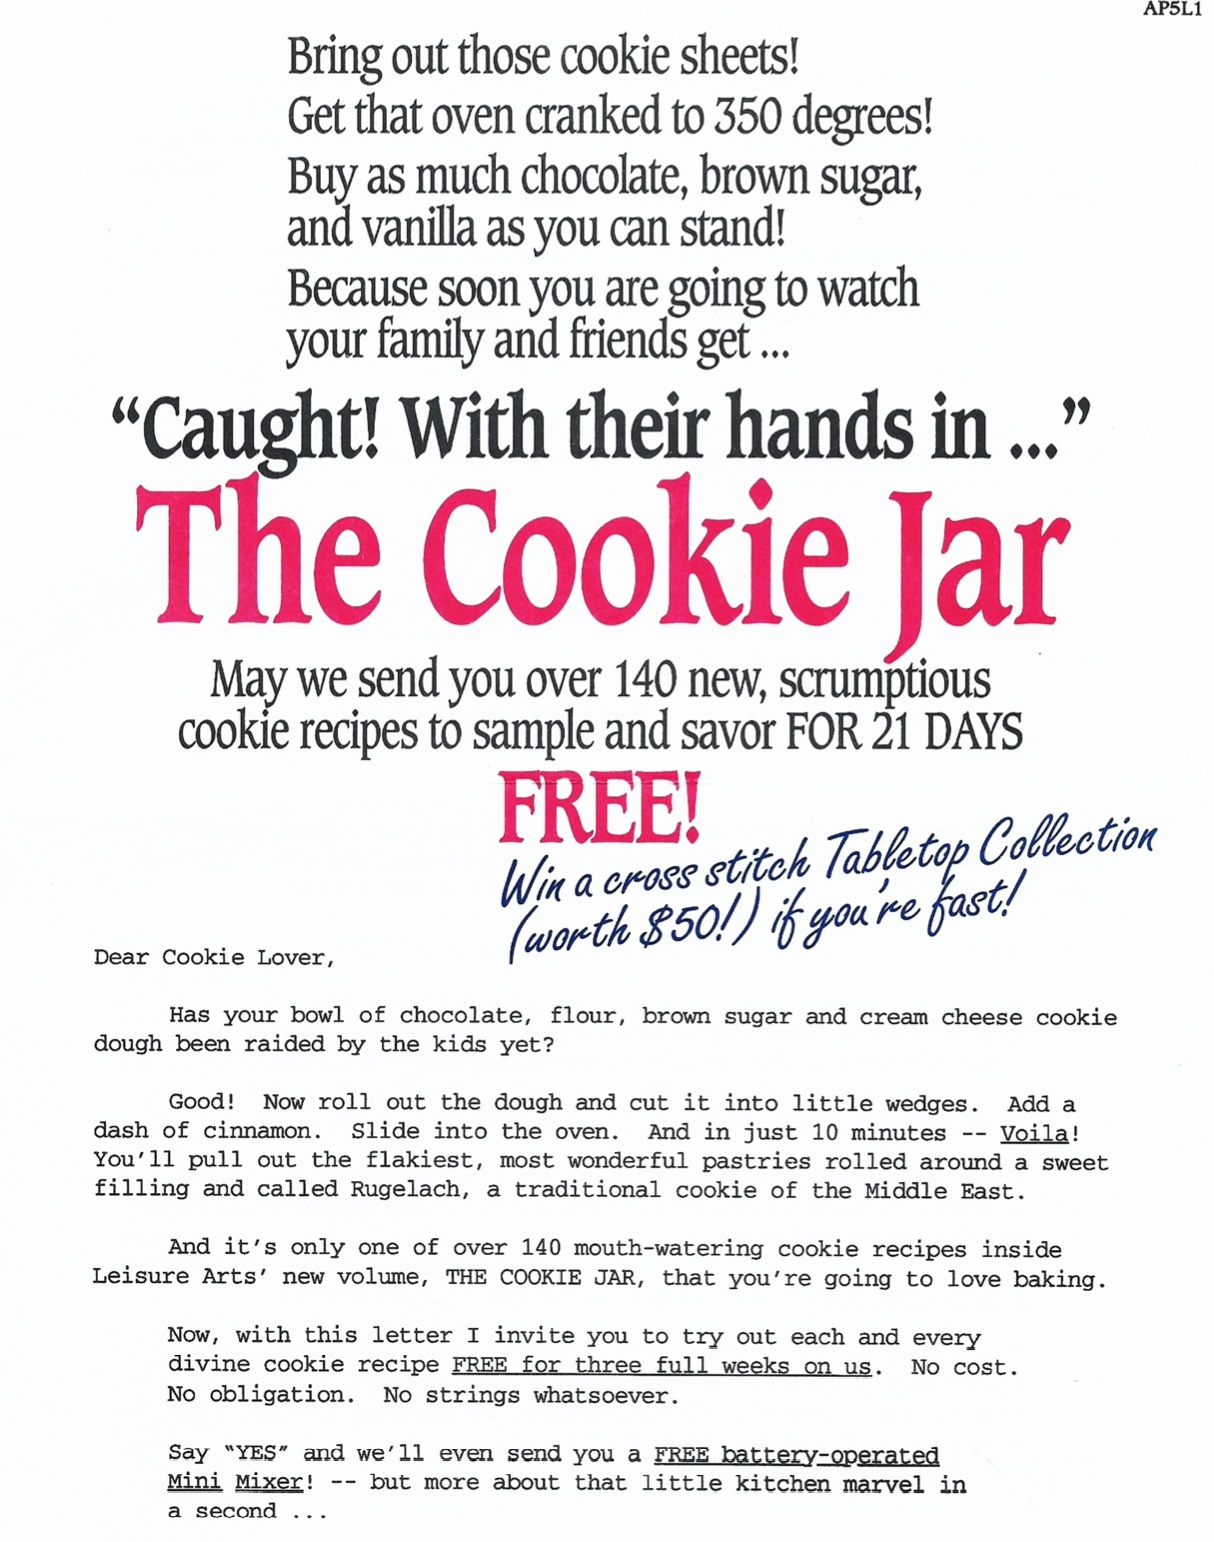 image of Cookie Jar direct mail sales letter page 1